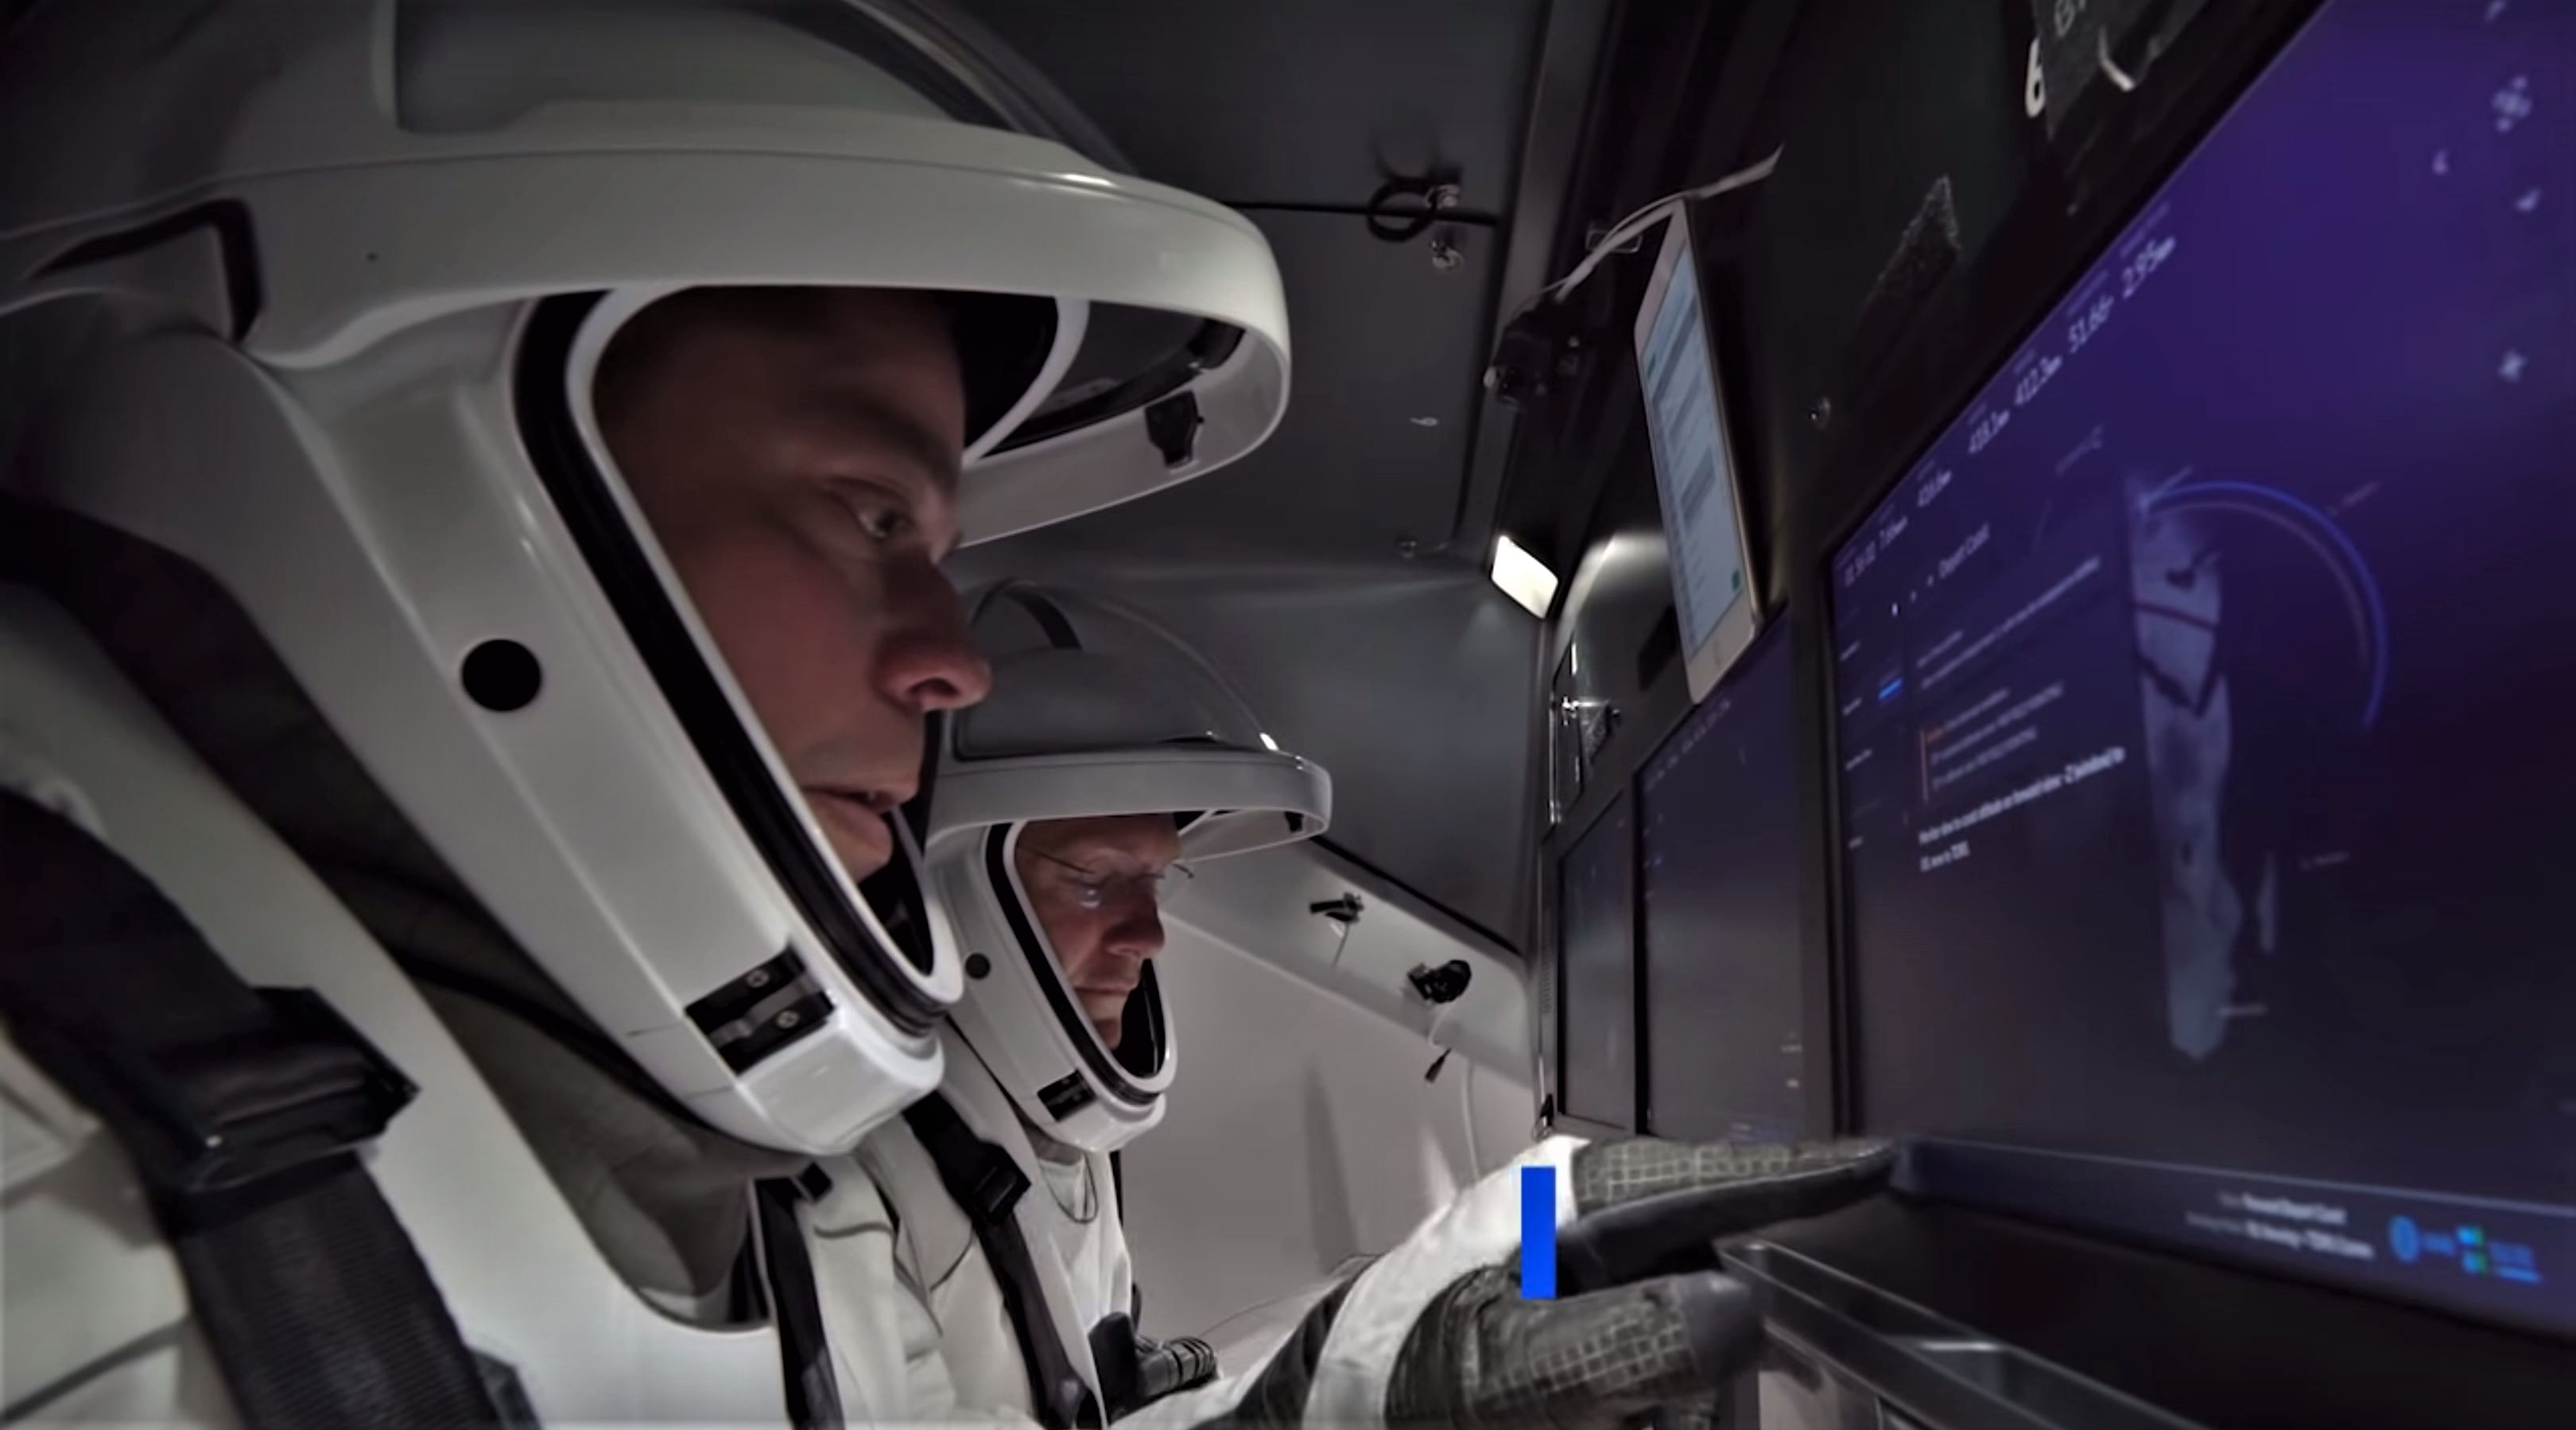 Crew Dragon Suit Amp Display Tests Nasa Spacex 7 Teslarati